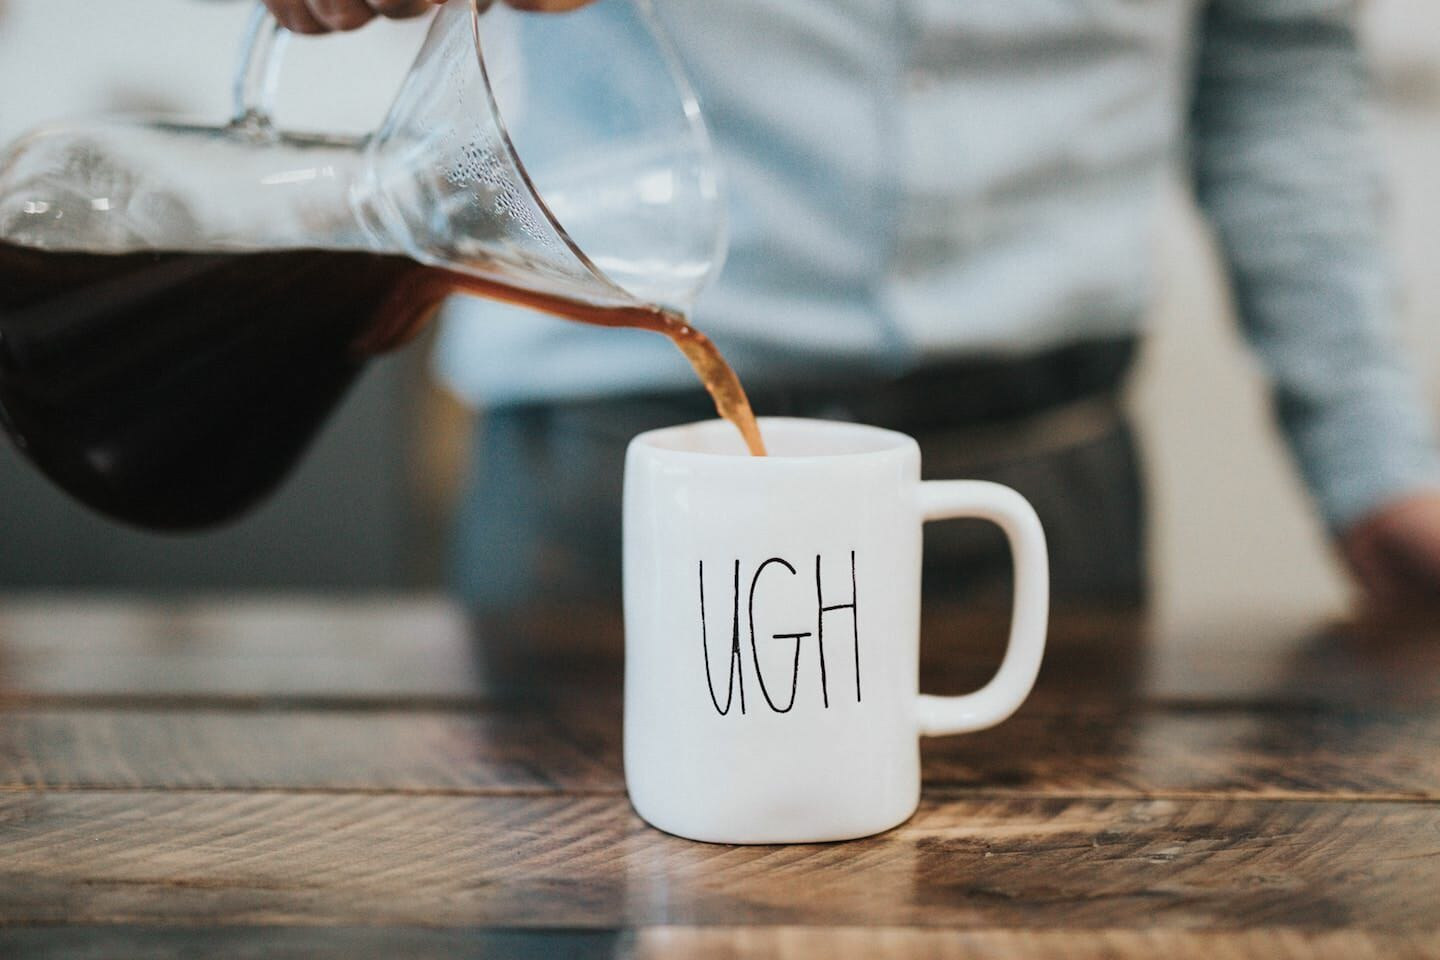 """Pouring coffee into a mugh that says """"ugh"""""""